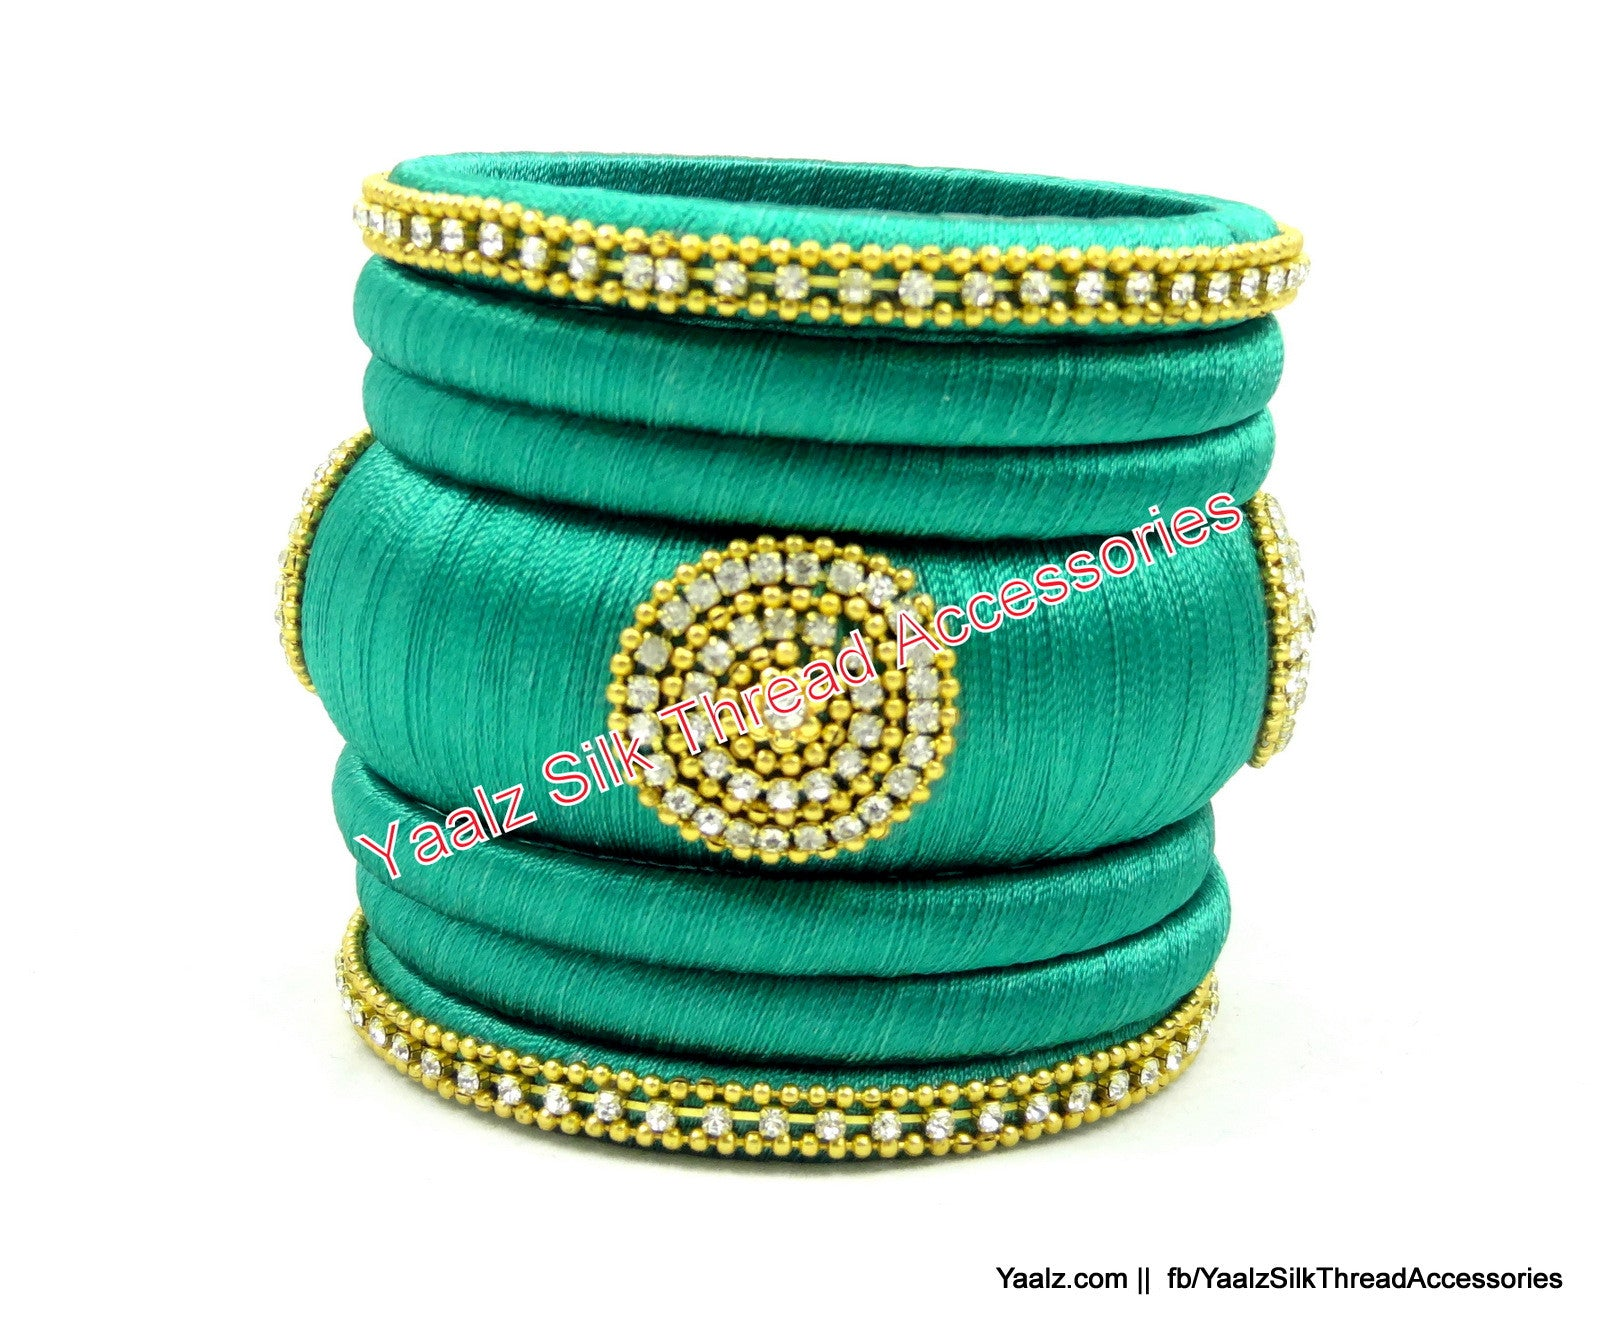 amazon jewellery in mpl green at luxor the store buy xrw low prices women india for brass dp online bangles set bangle